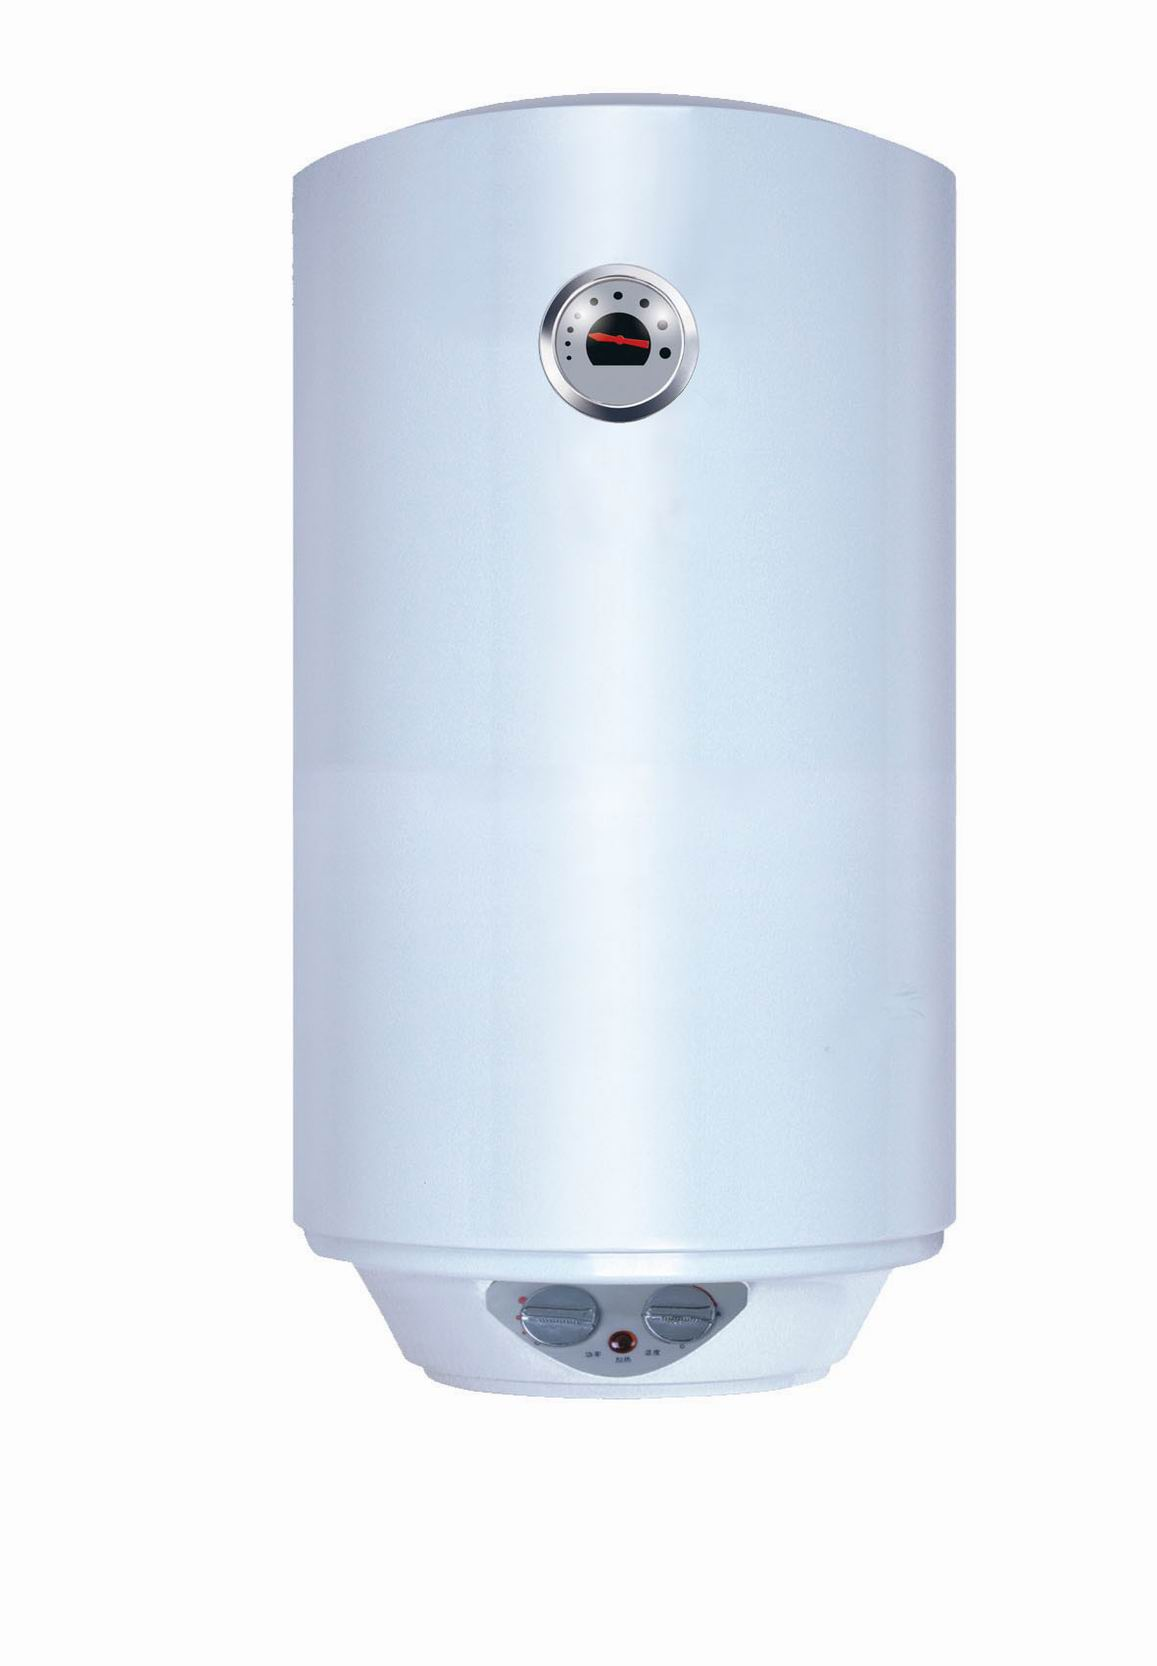 Your Blog Hystericalshopp7 Electric Water Heater Troubleshooting Srchttp Webtradekoreacom Upload File2 Sell 27 S00026427